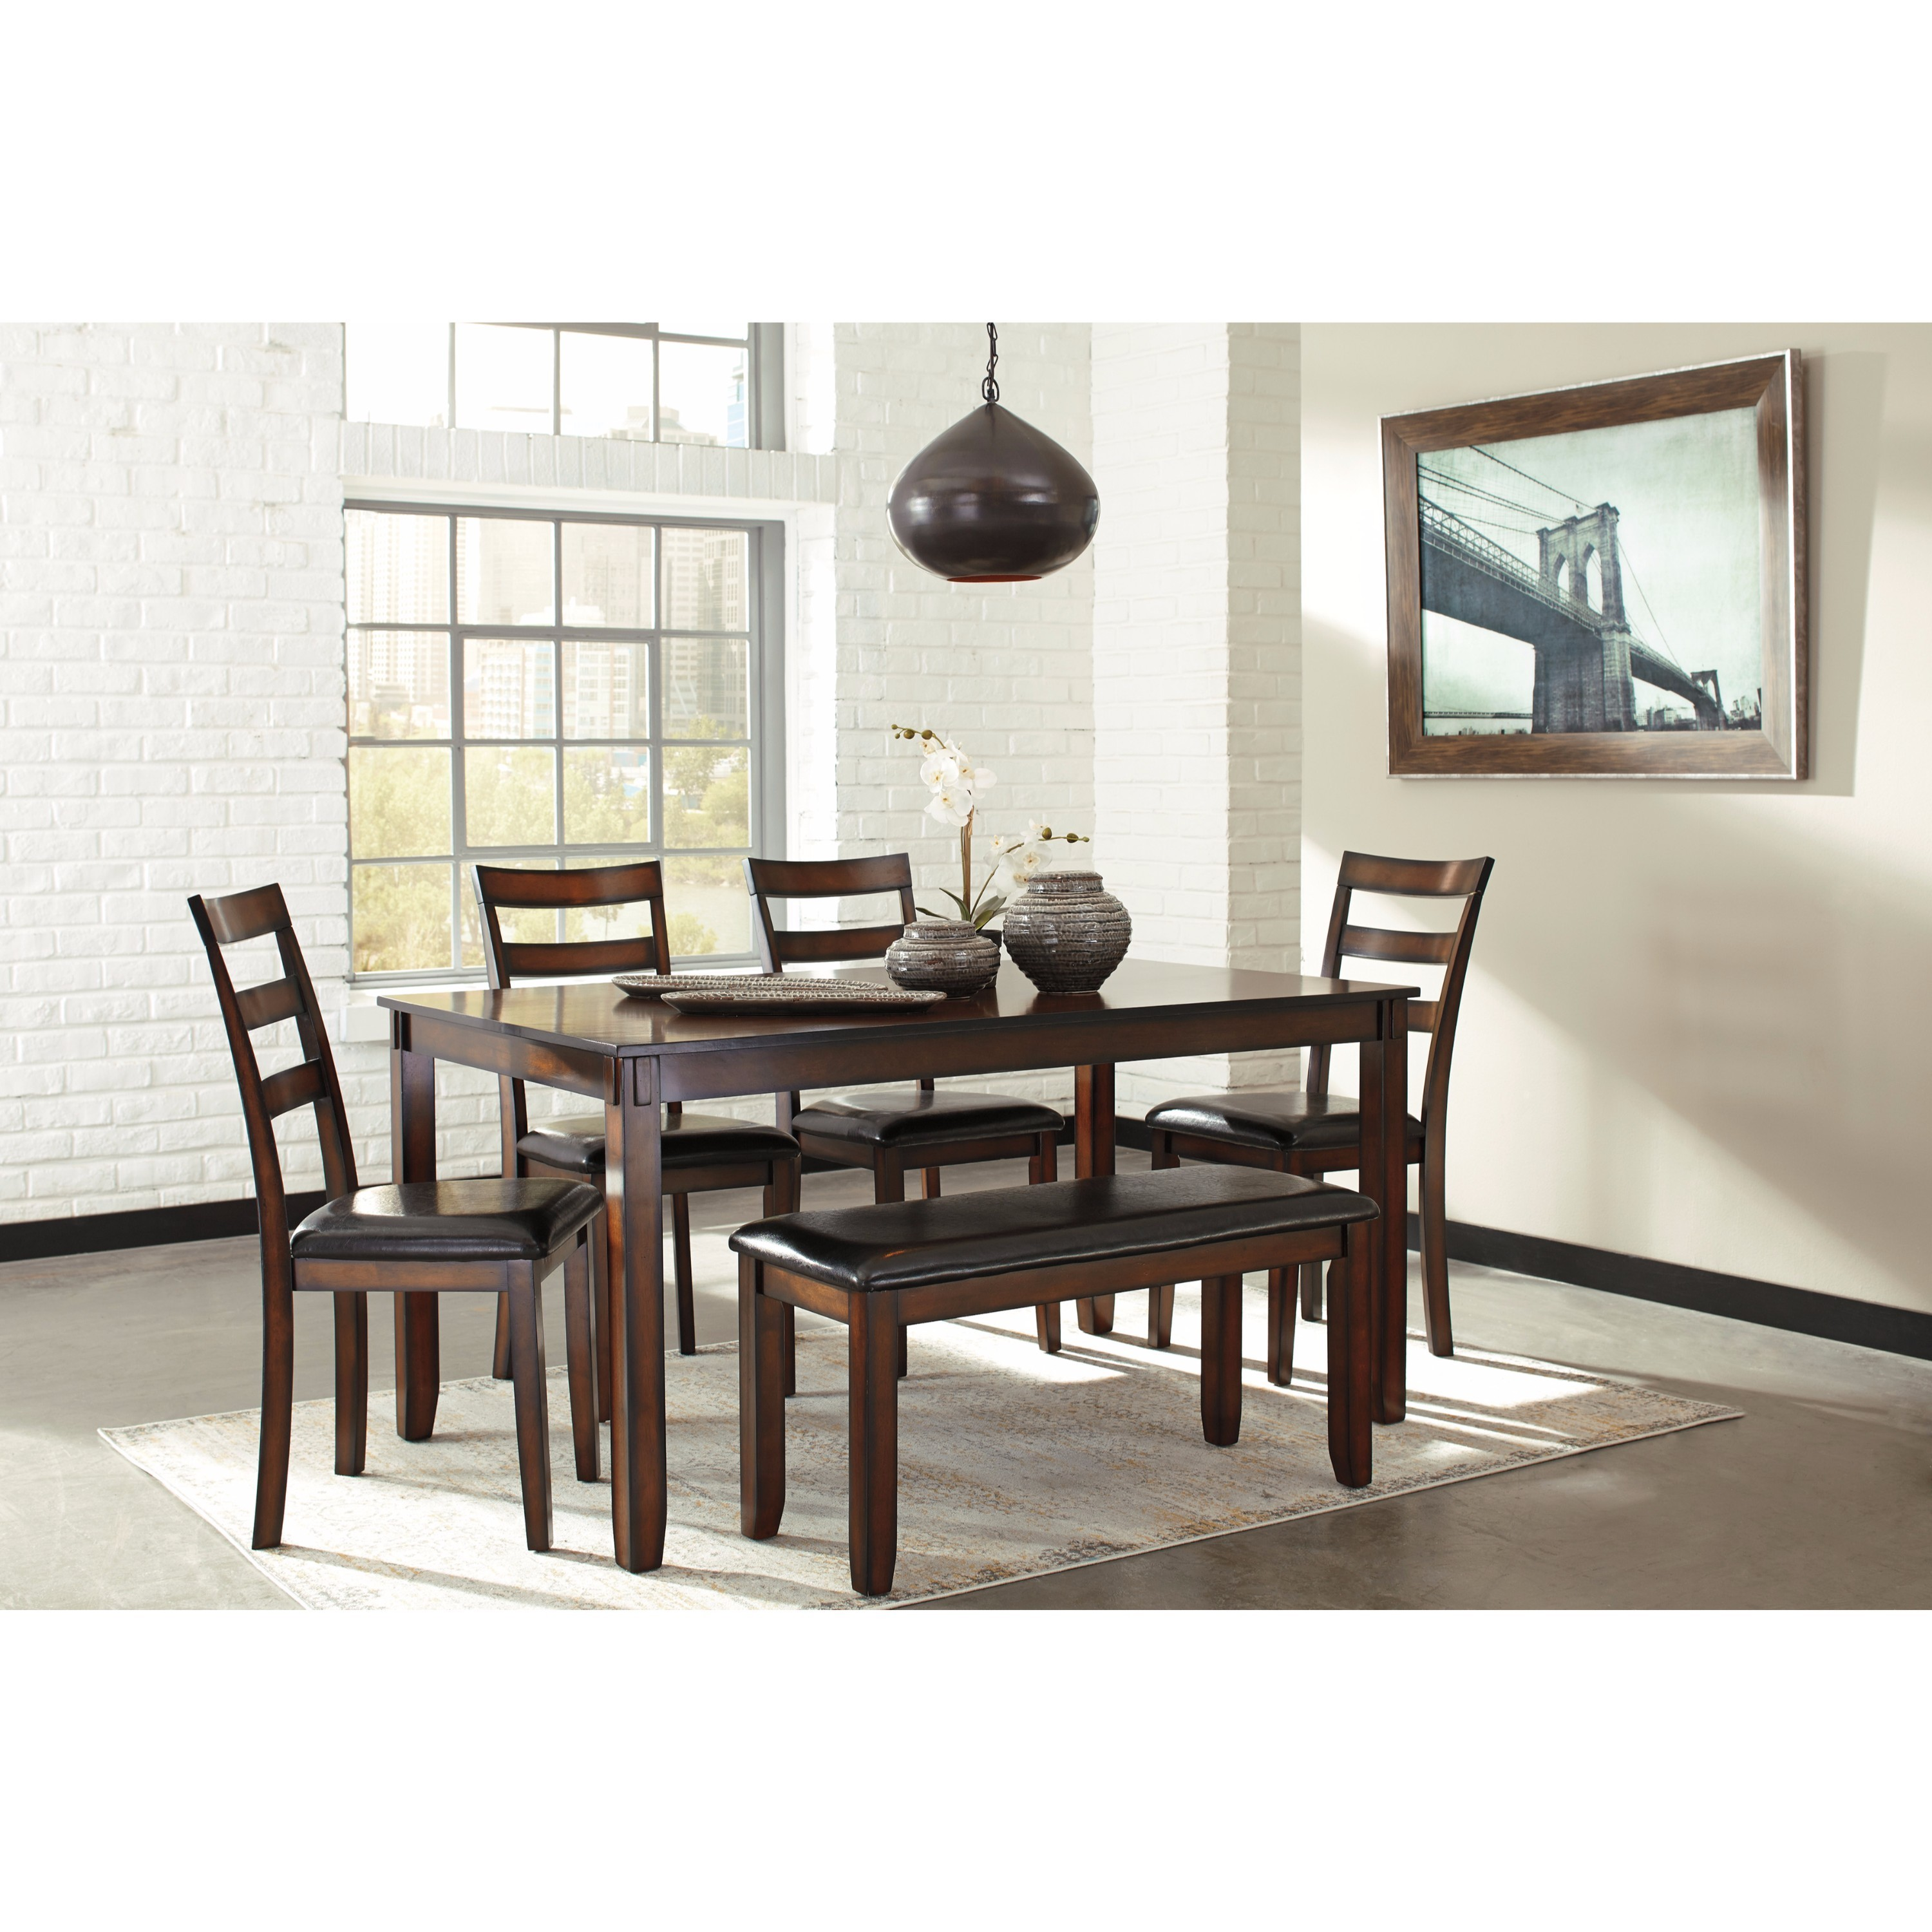 11a1bfb58f Shop Signature Design by Ashley Coviar Brown 6-Piece Dining Room Table Set  - Free Shipping Today - Overstock - 14253499